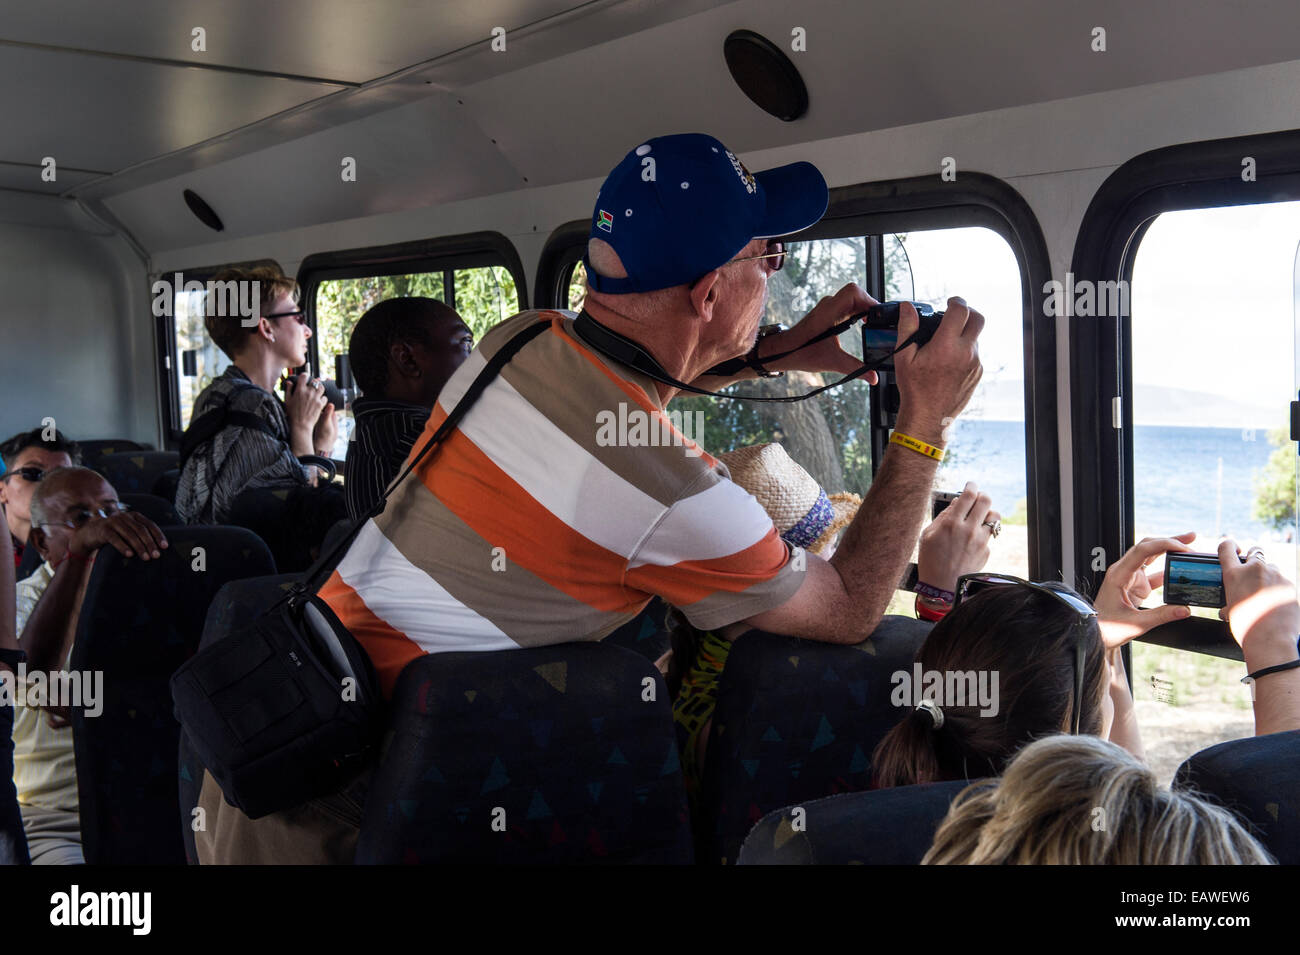 Tourists photograph historical prison museum sites from a tour bus. - Stock Image